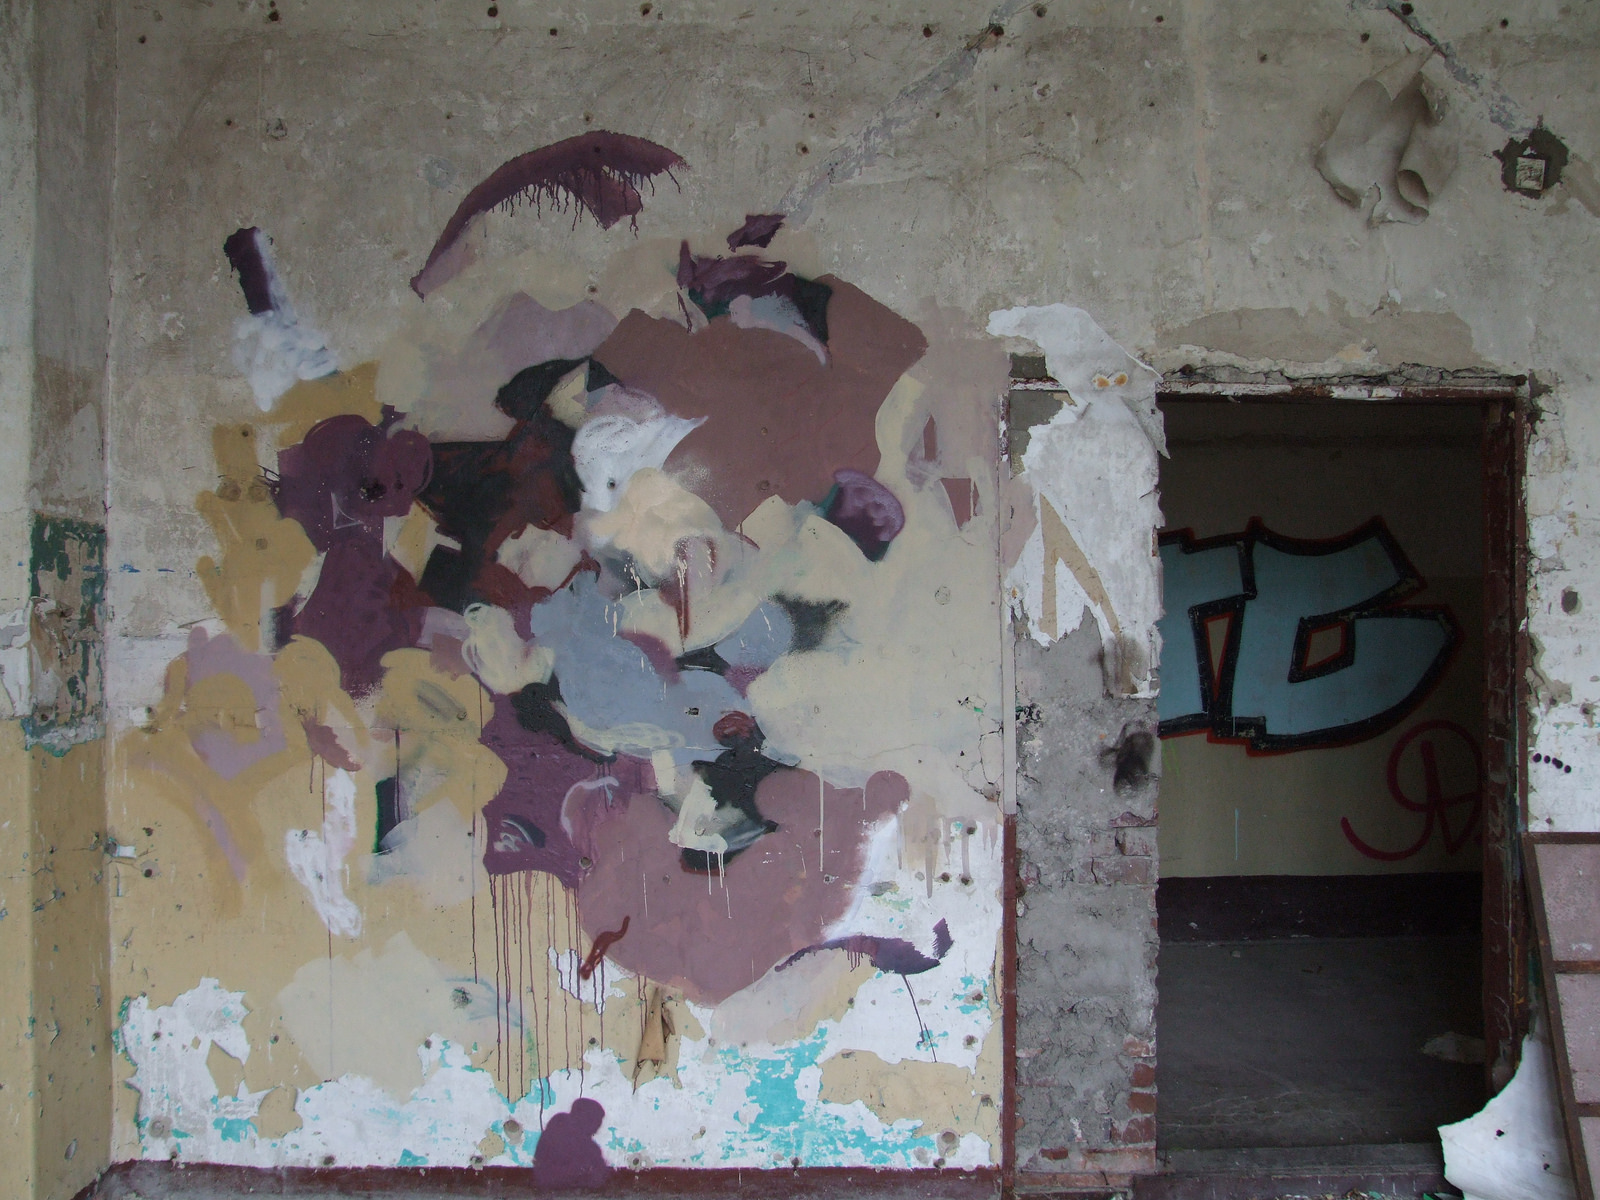 duncan-passmore-new-murals-in-an-abandoned-building-05